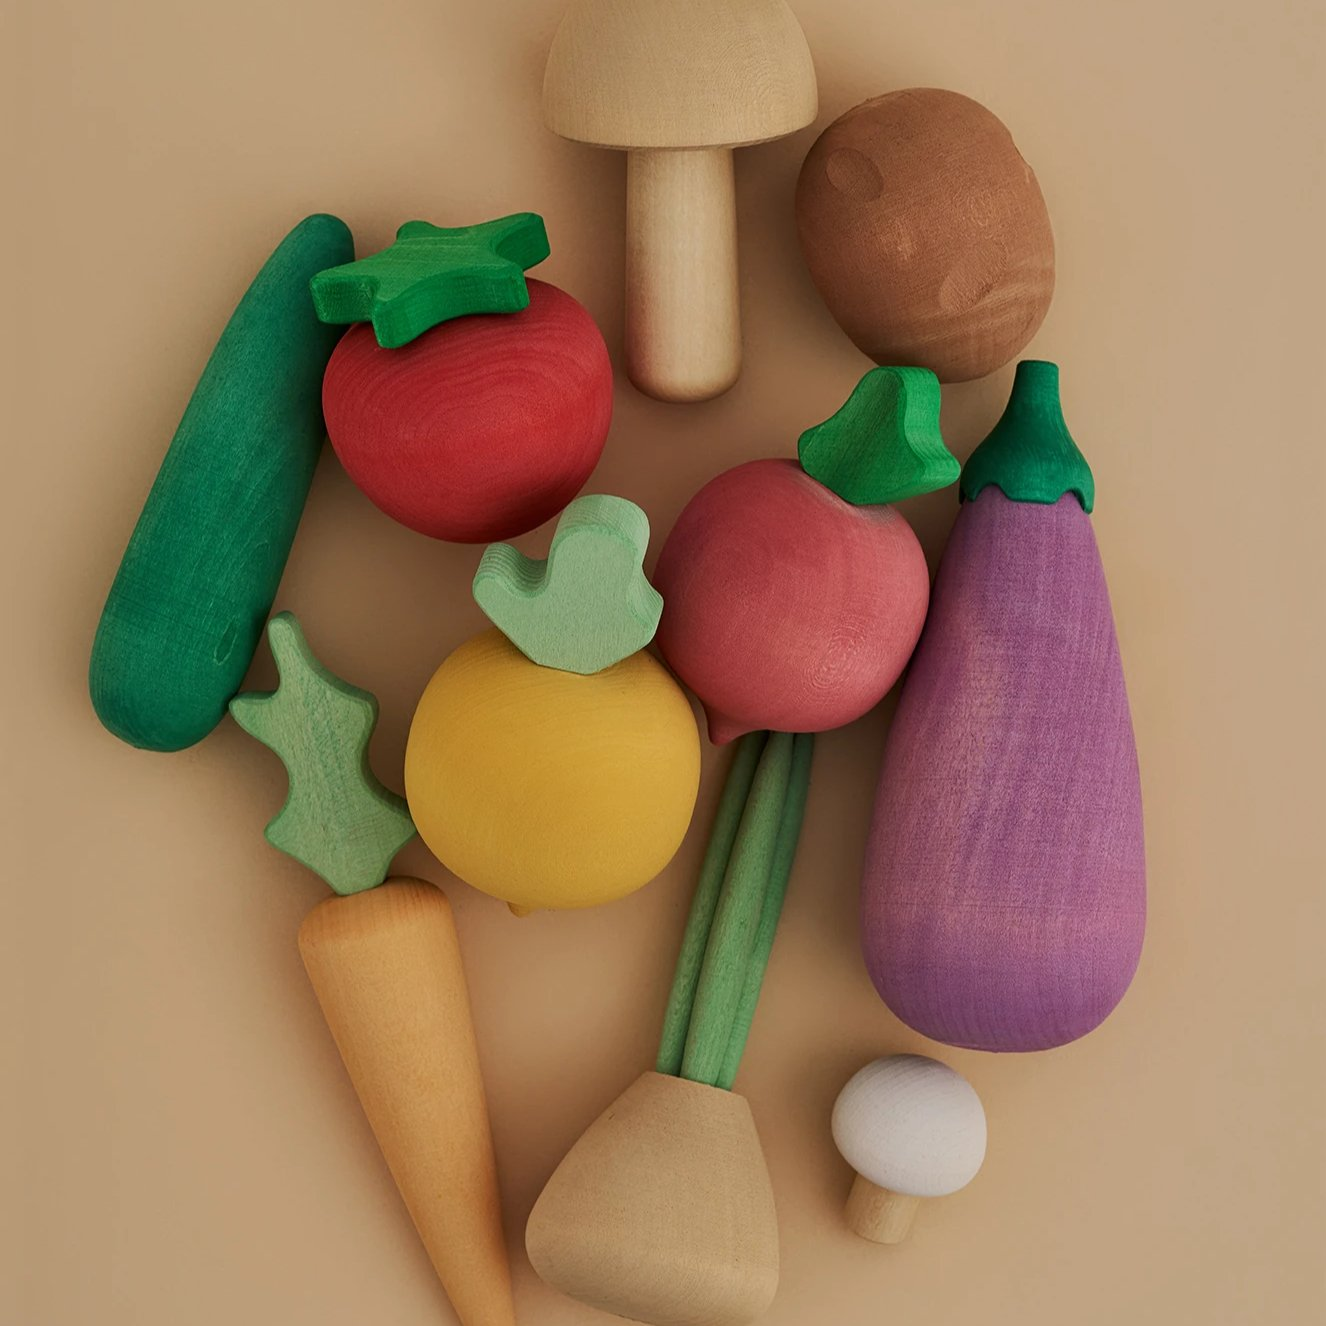 *PREORDER* Wooden Vegetable Set